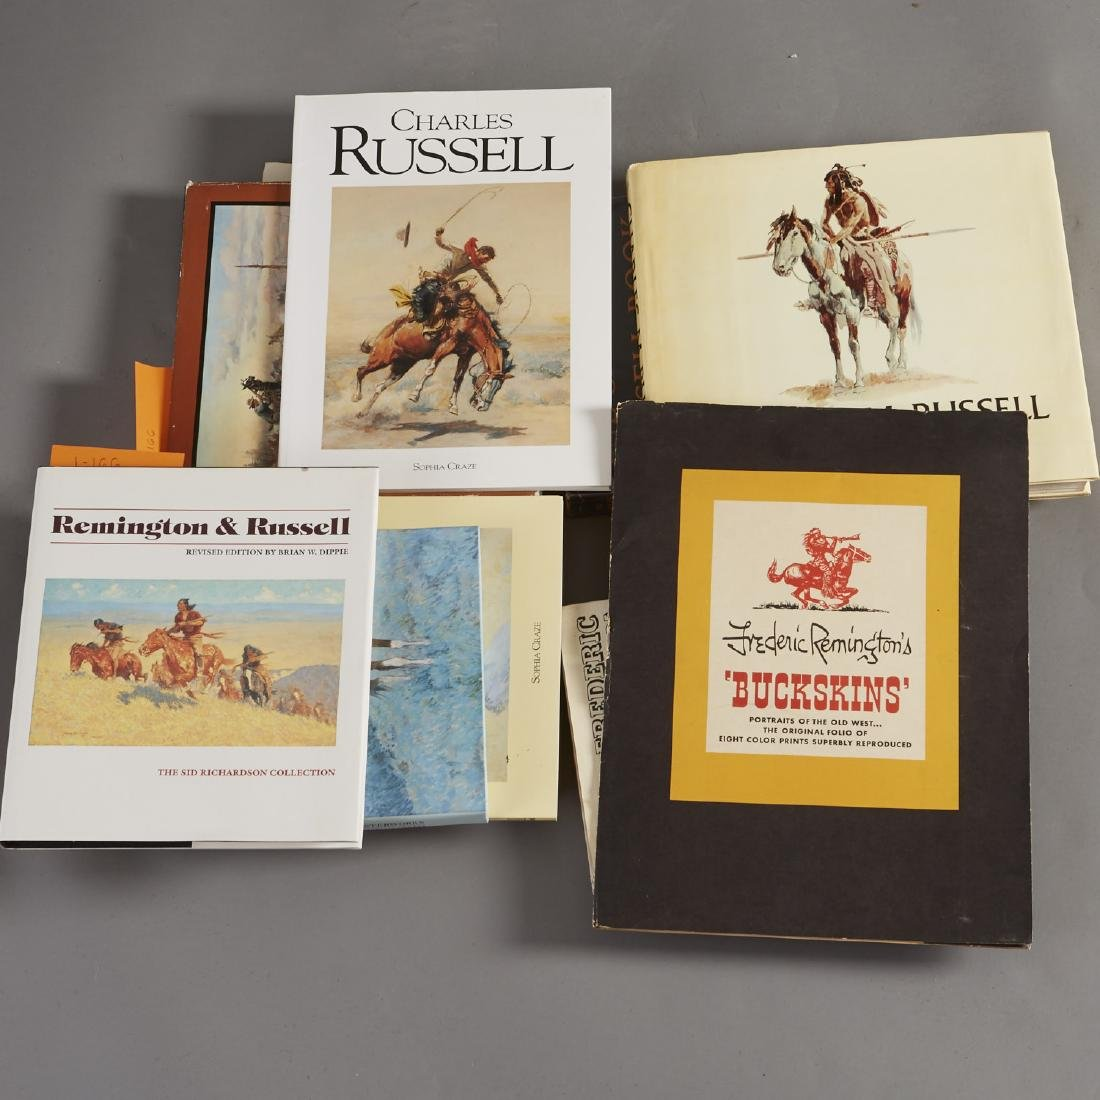 11 Books about Russell and Remington